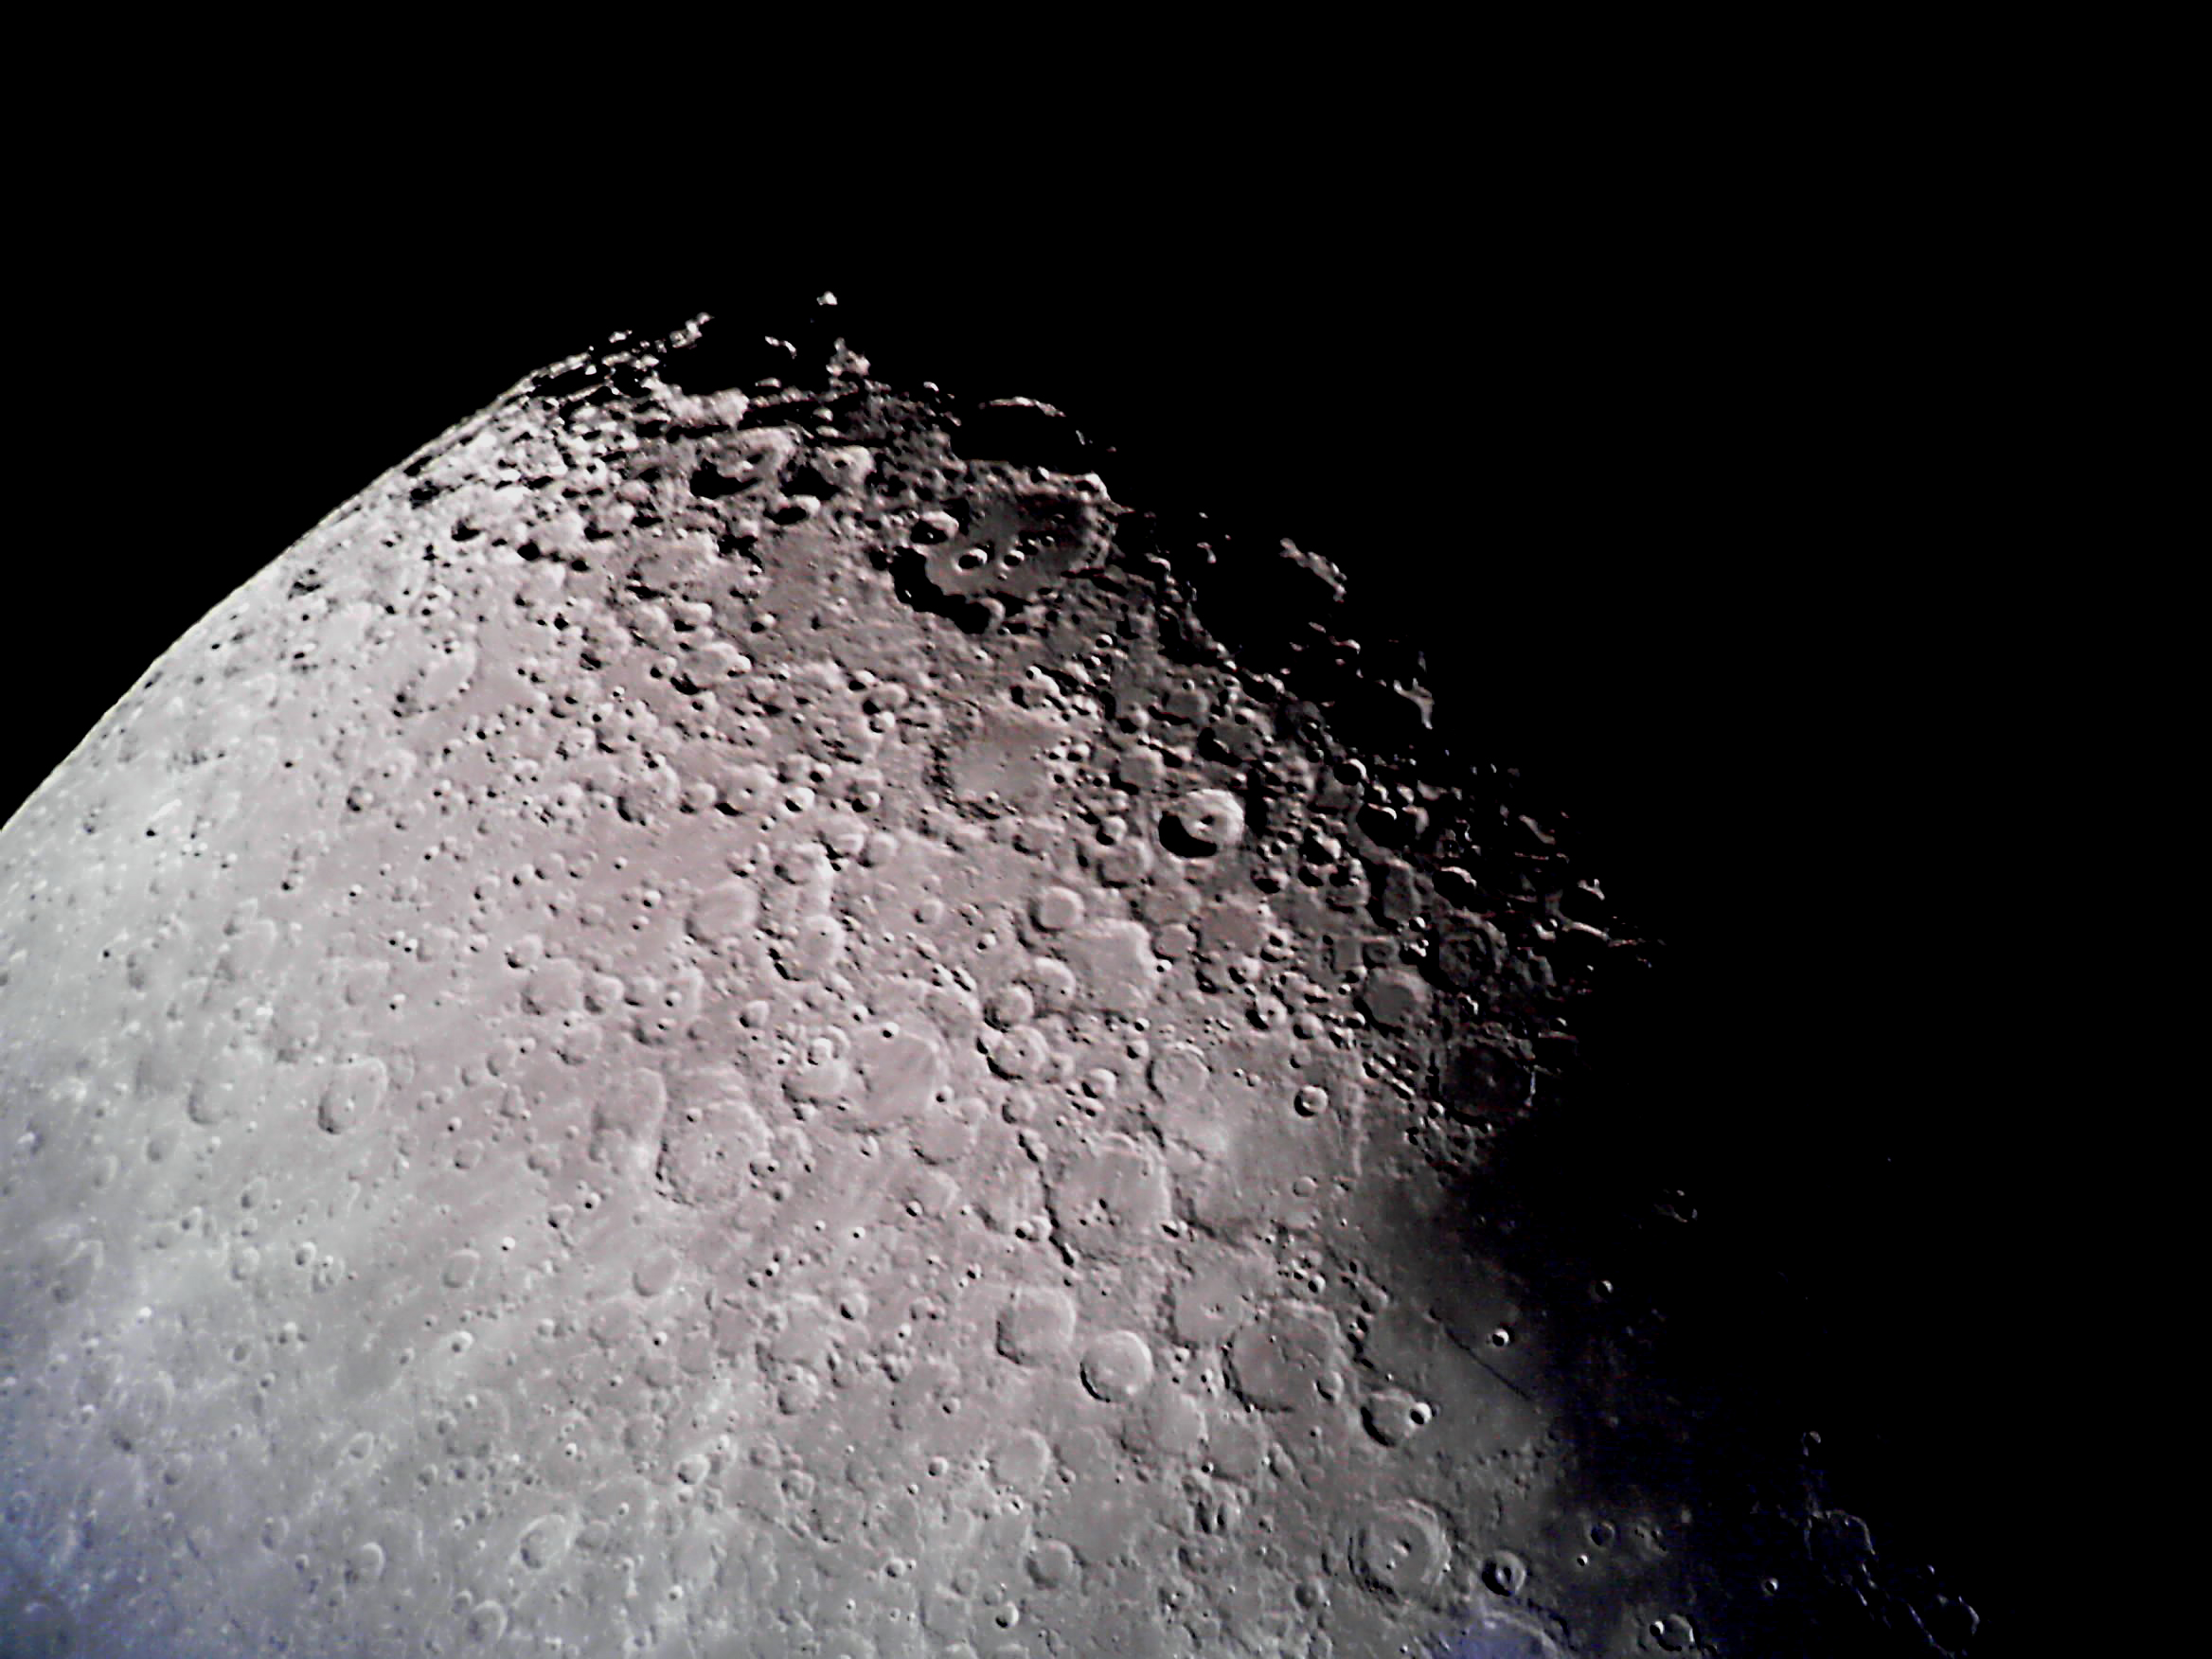 Image of the moon taken by Dave Thomson, during or before December 2006. No other information known.